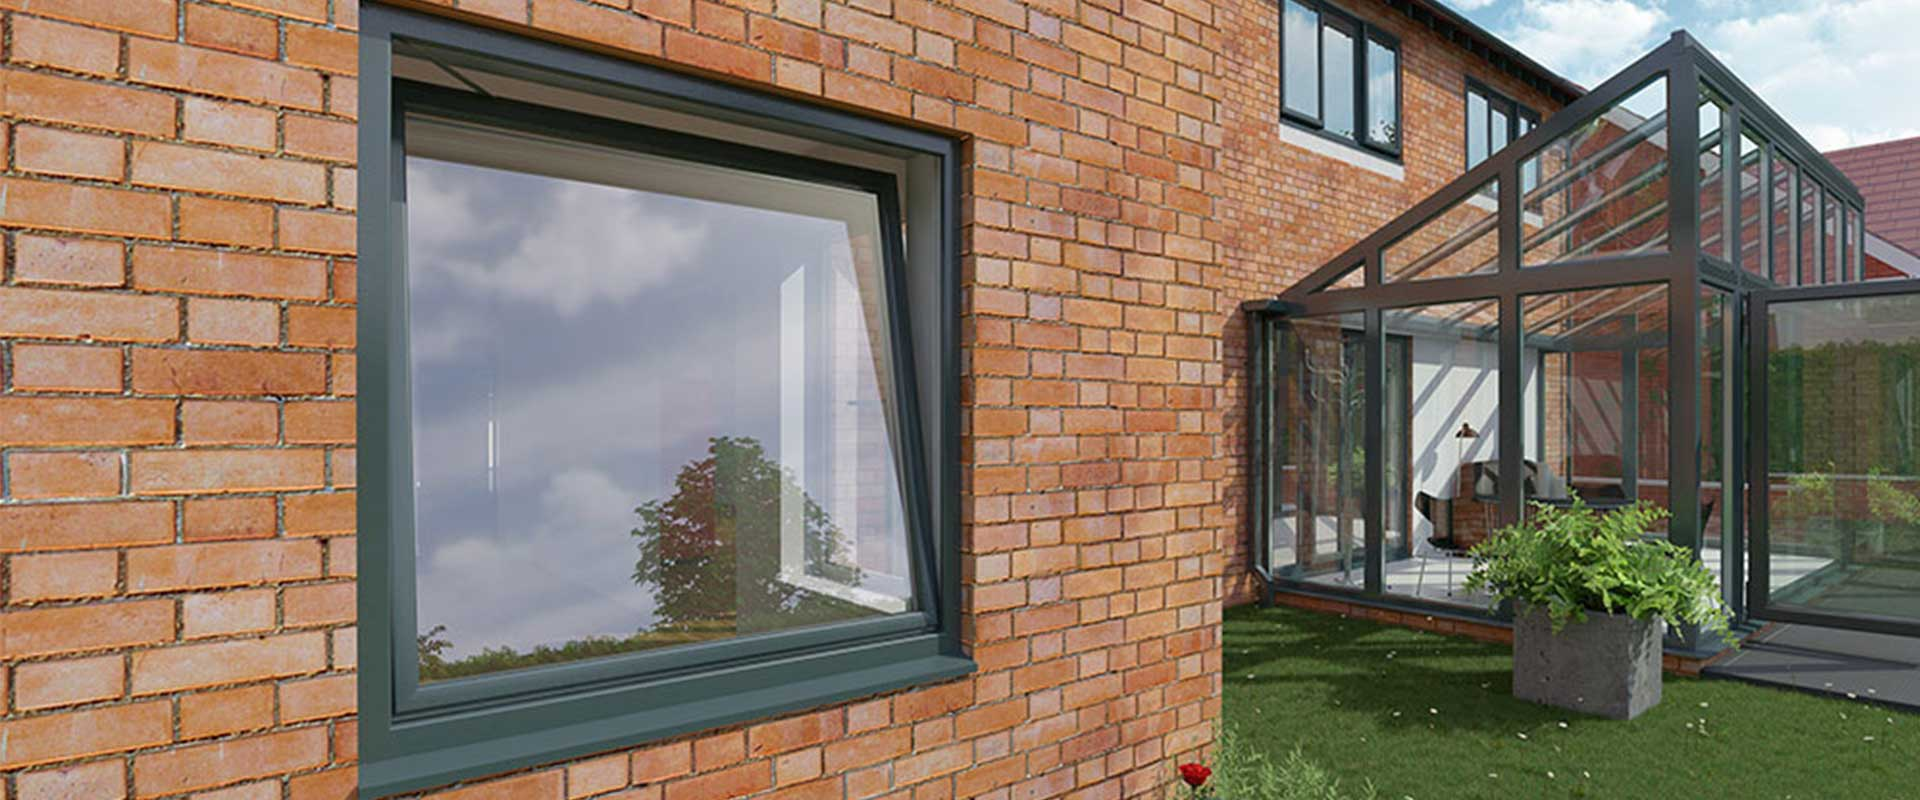 Thermal Efficient Flush Sash Casement Windows Surrey